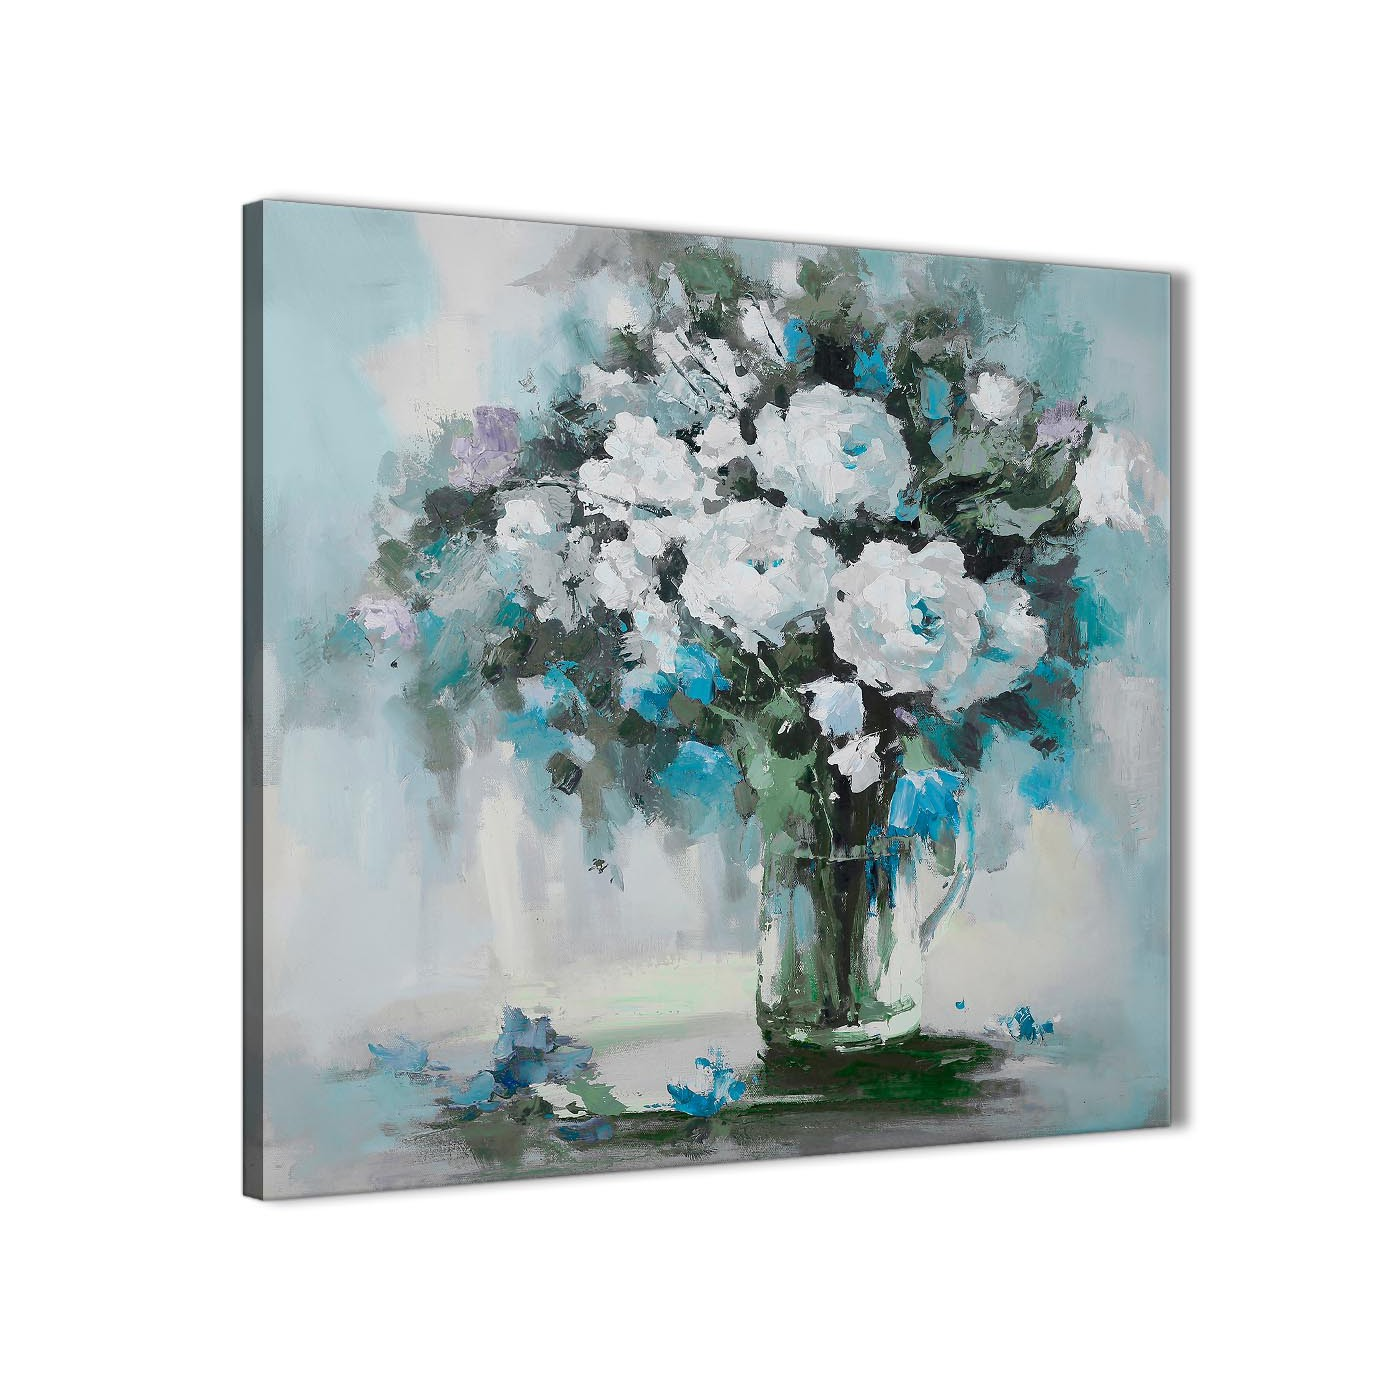 Teal White Flowers Painting Abstract Bedroom Canvas Pictures